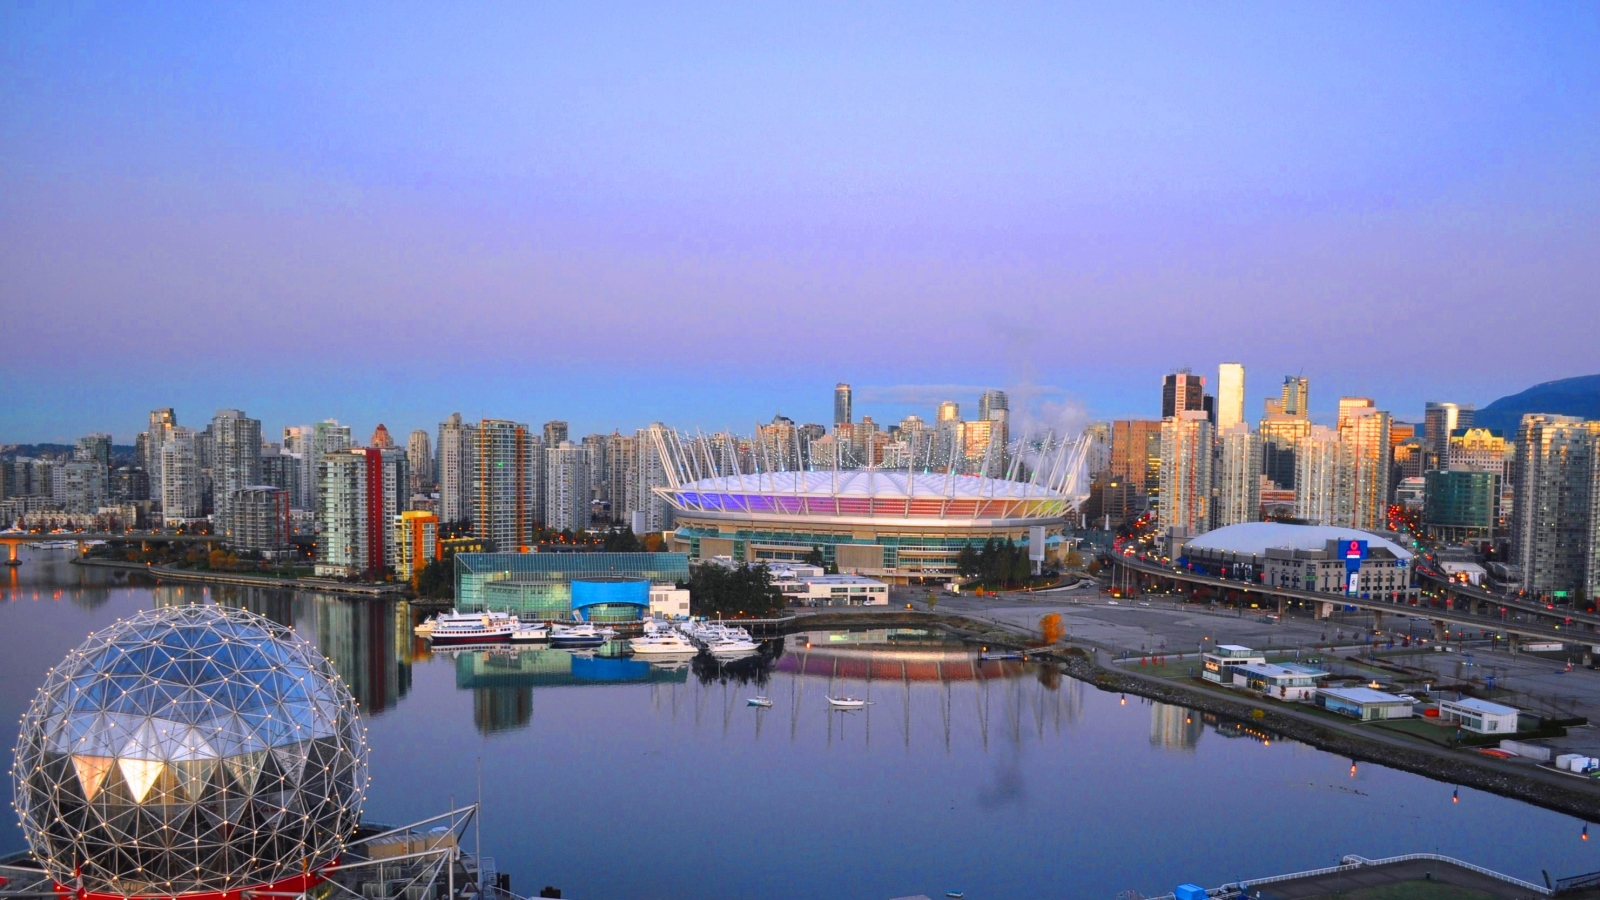 Things to Do in Vancouver - City Skyline with BC Place Stadium